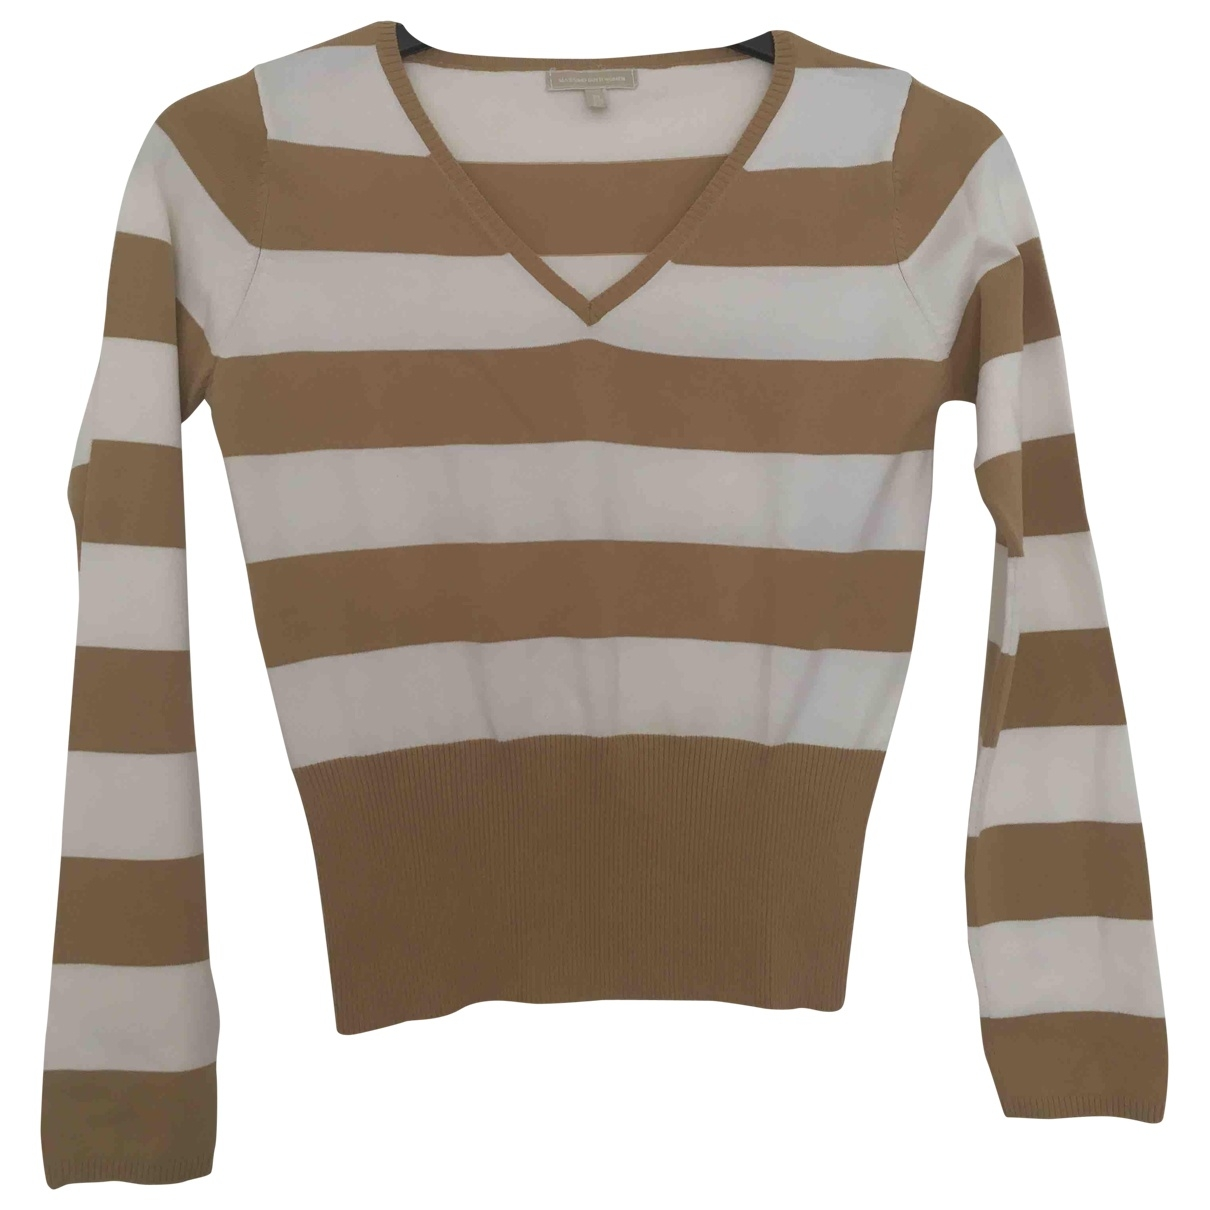 Massimo Dutti \N Beige Cotton Knitwear for Women M International